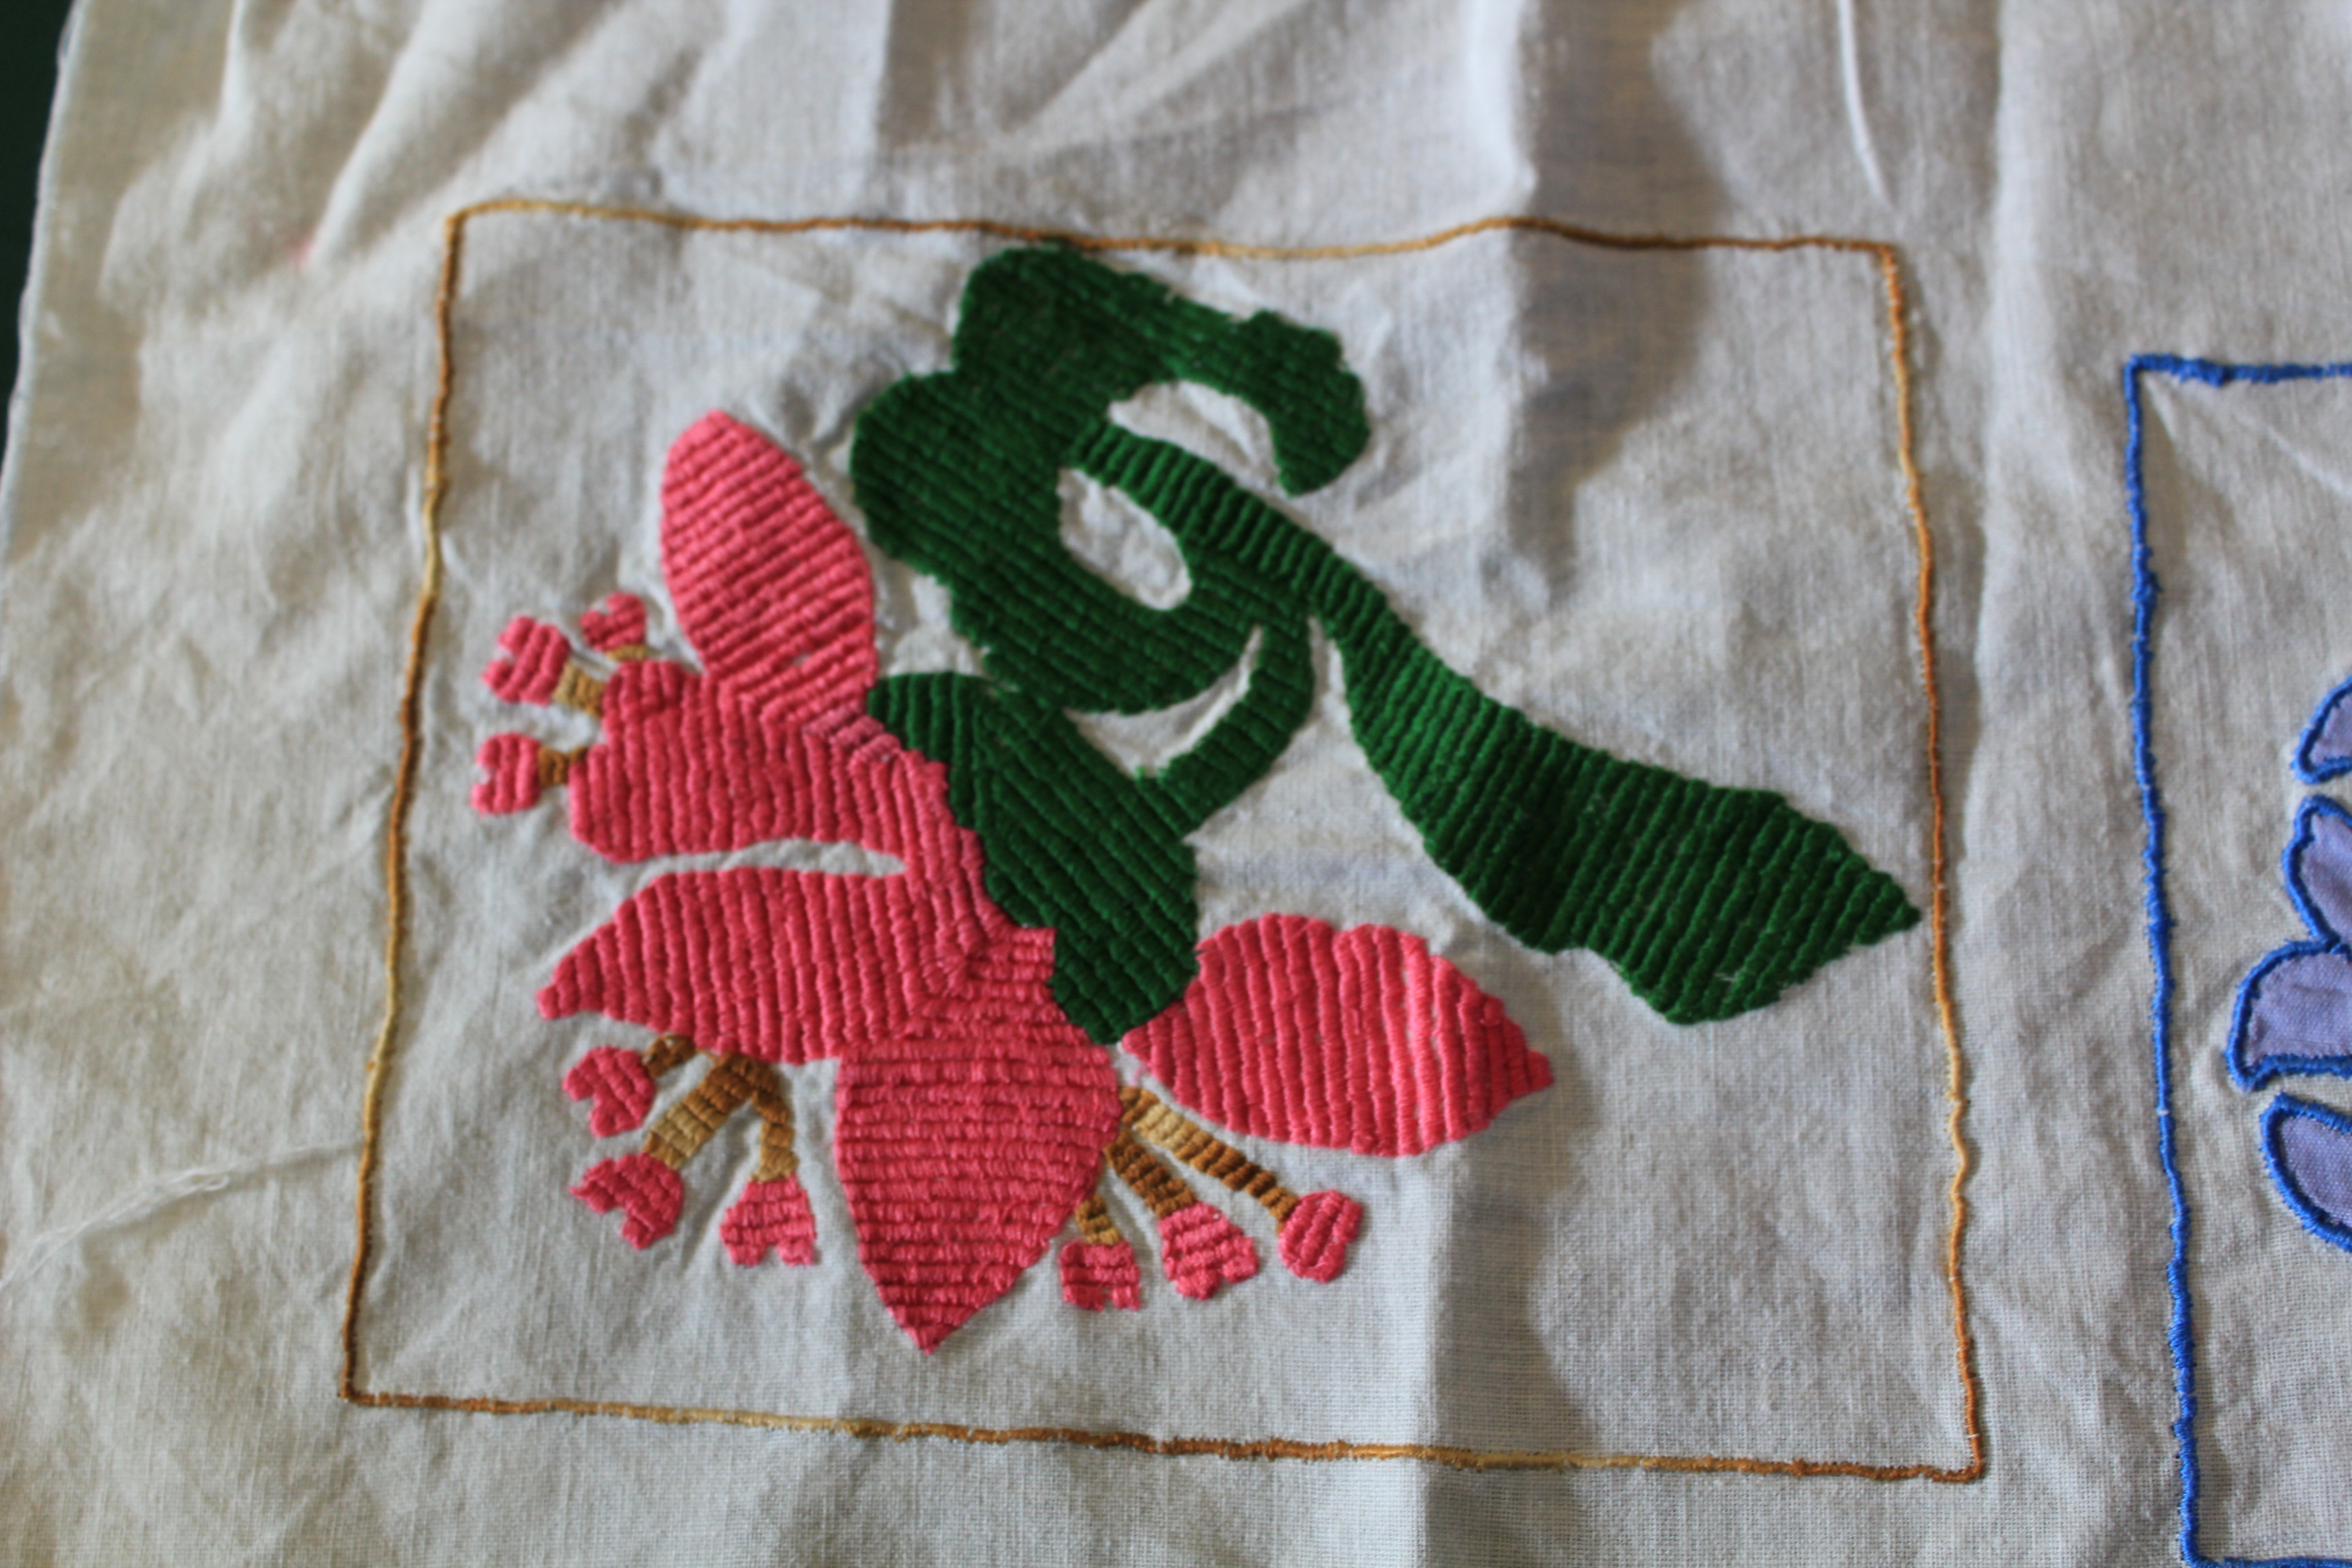 embroidery work